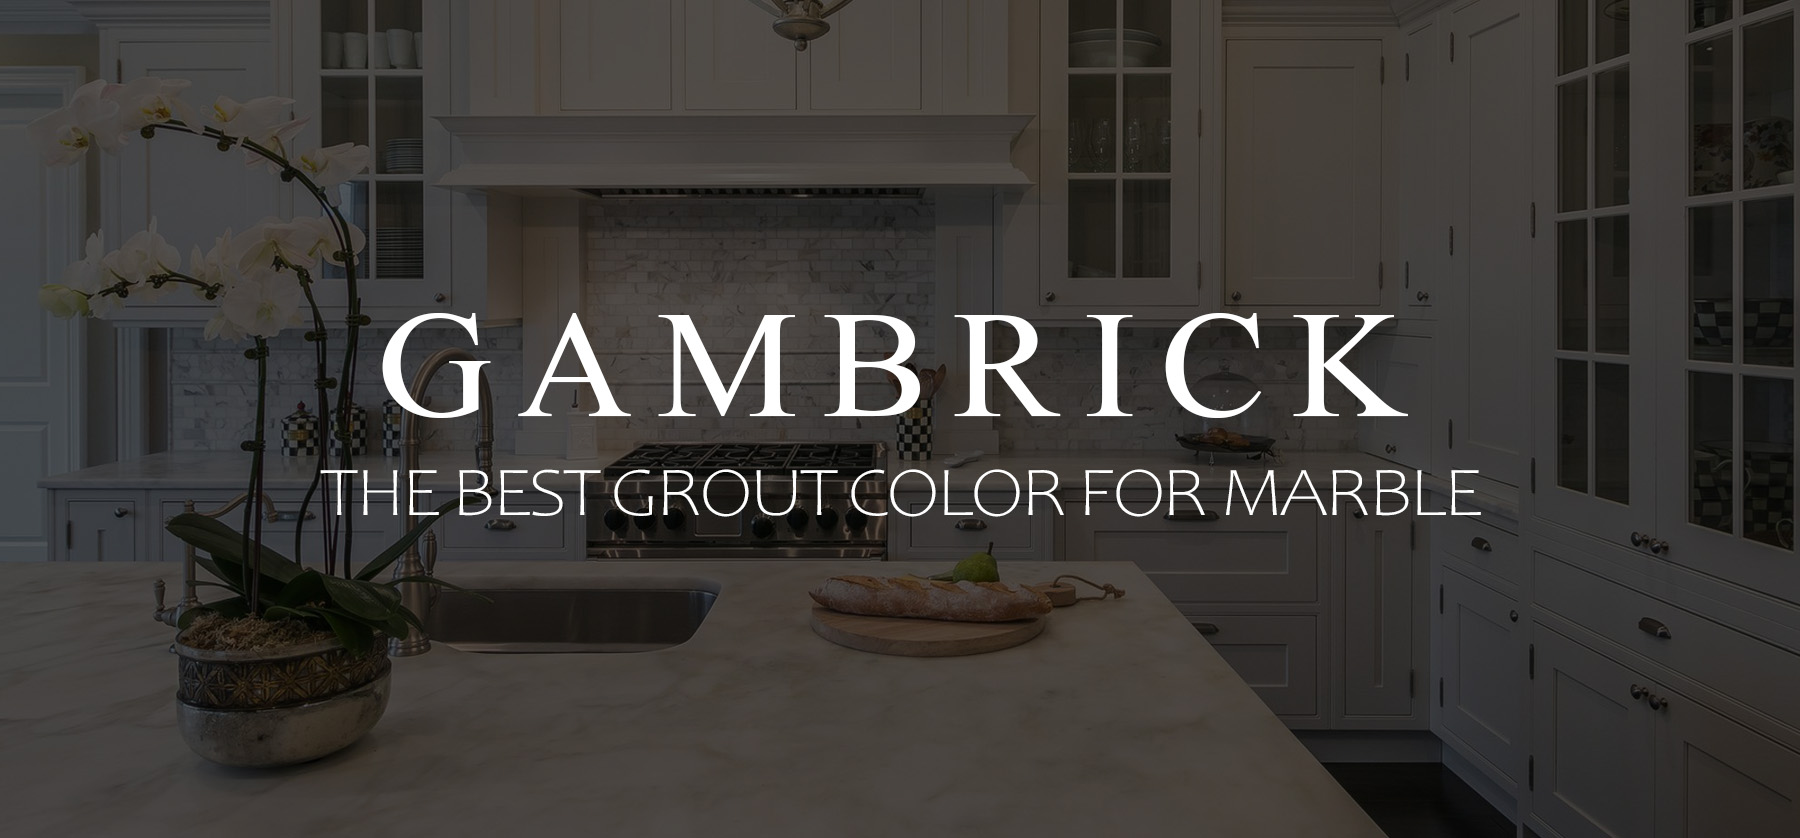 the best grout color for marble